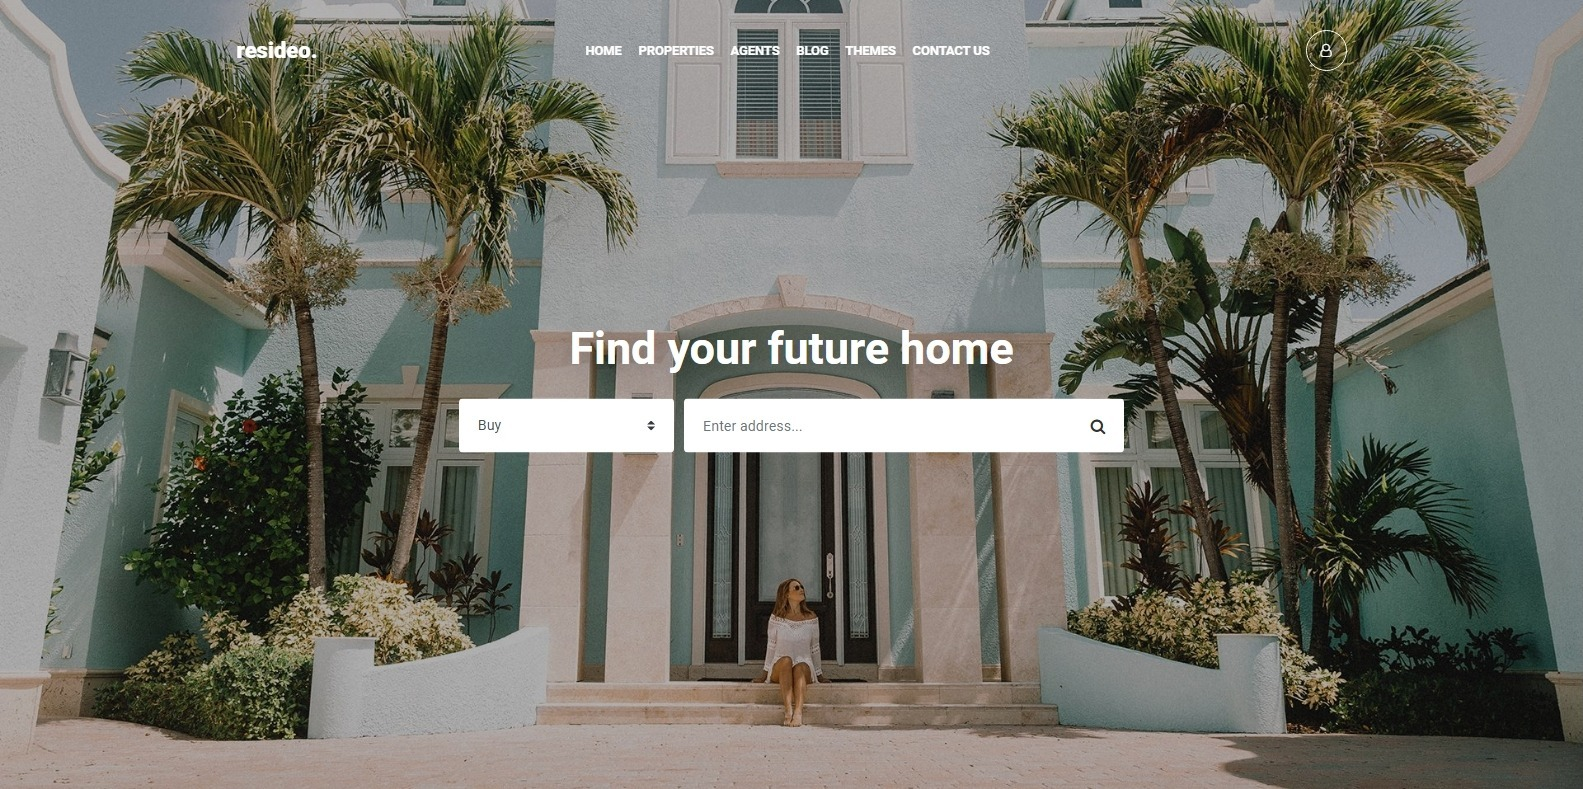 resideo-real-estate-website-template